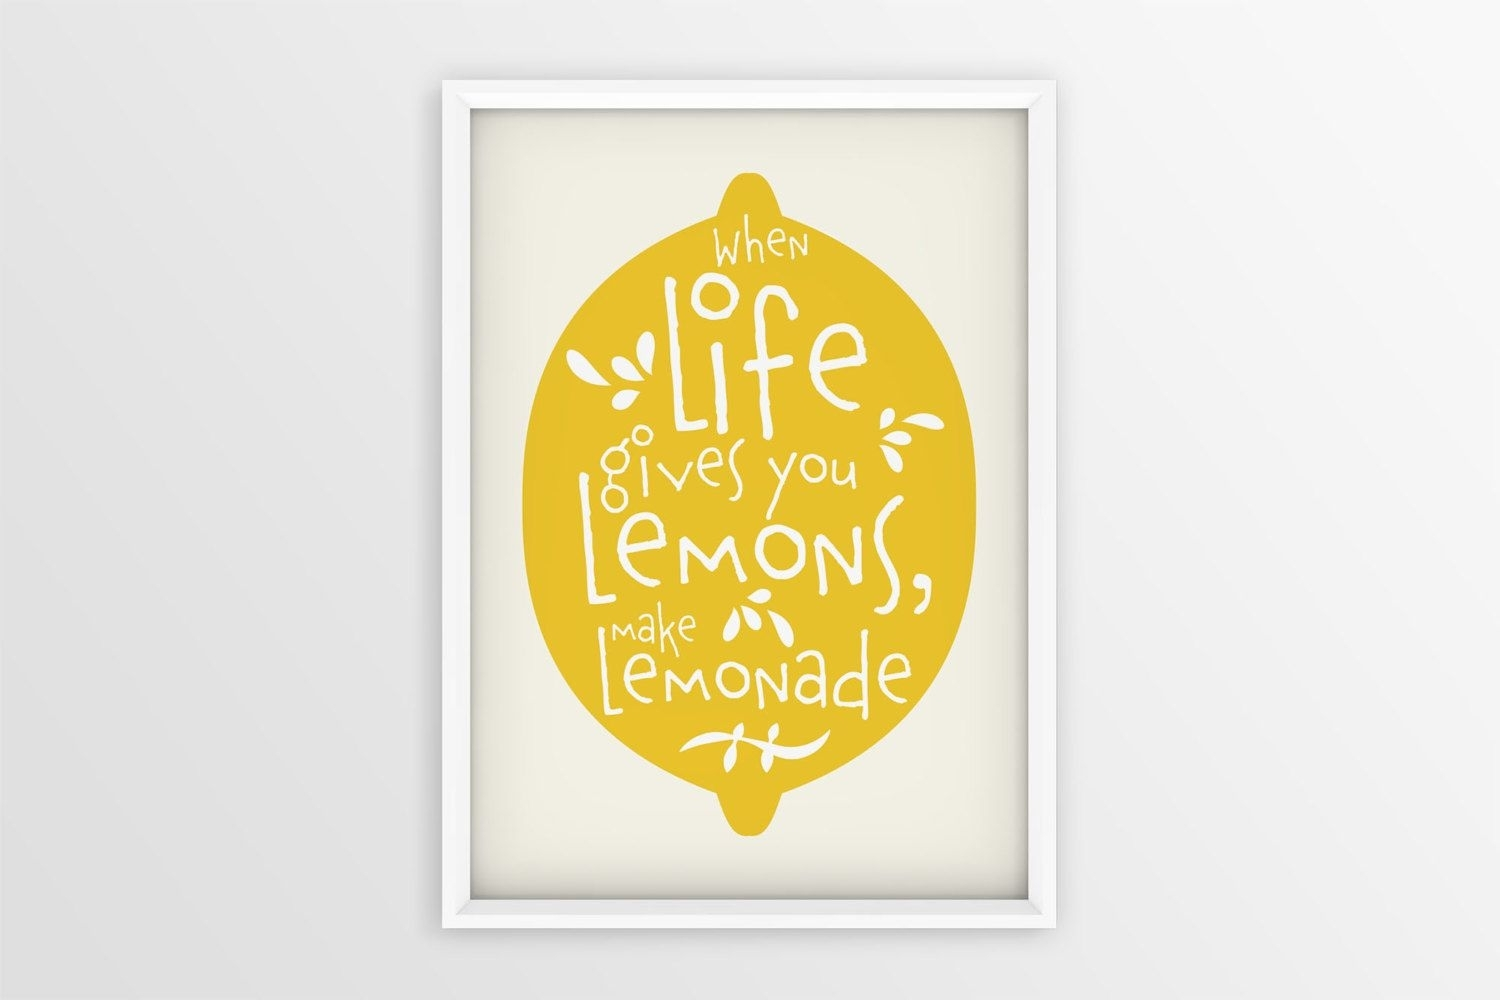 Lemonade Wall Art | If Life Gives You Lemons Make Lemonade | Lemon Pertaining To Latest Lemon Wall Art (View 7 of 20)